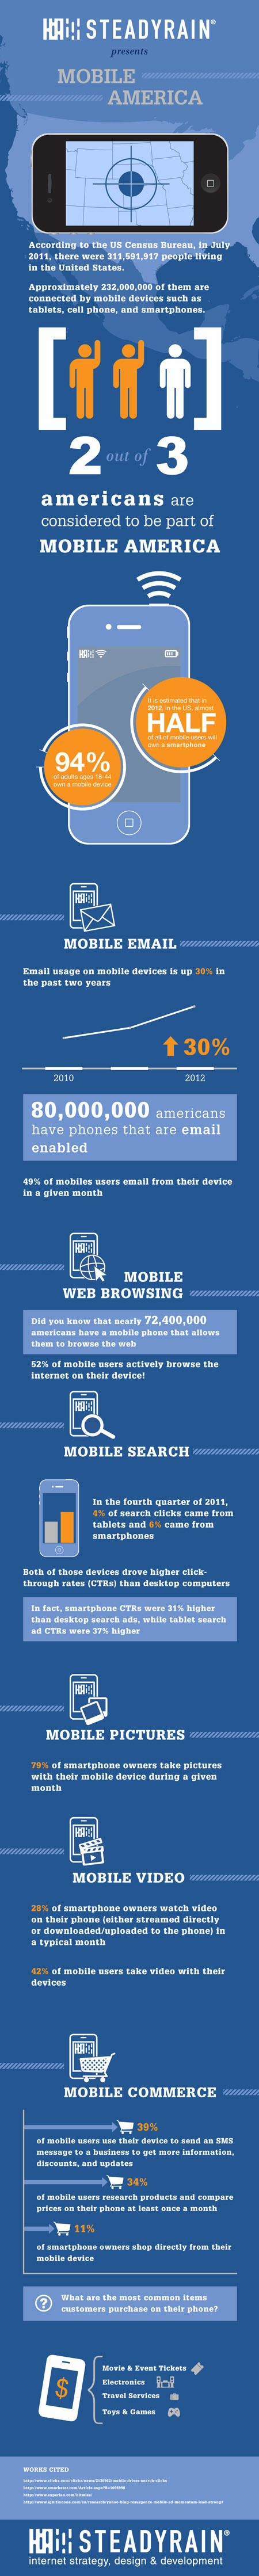 U.S. Mobile Phone Usage Statistics [INFOGRAPHIC] | Audiovisual Interaction | Scoop.it